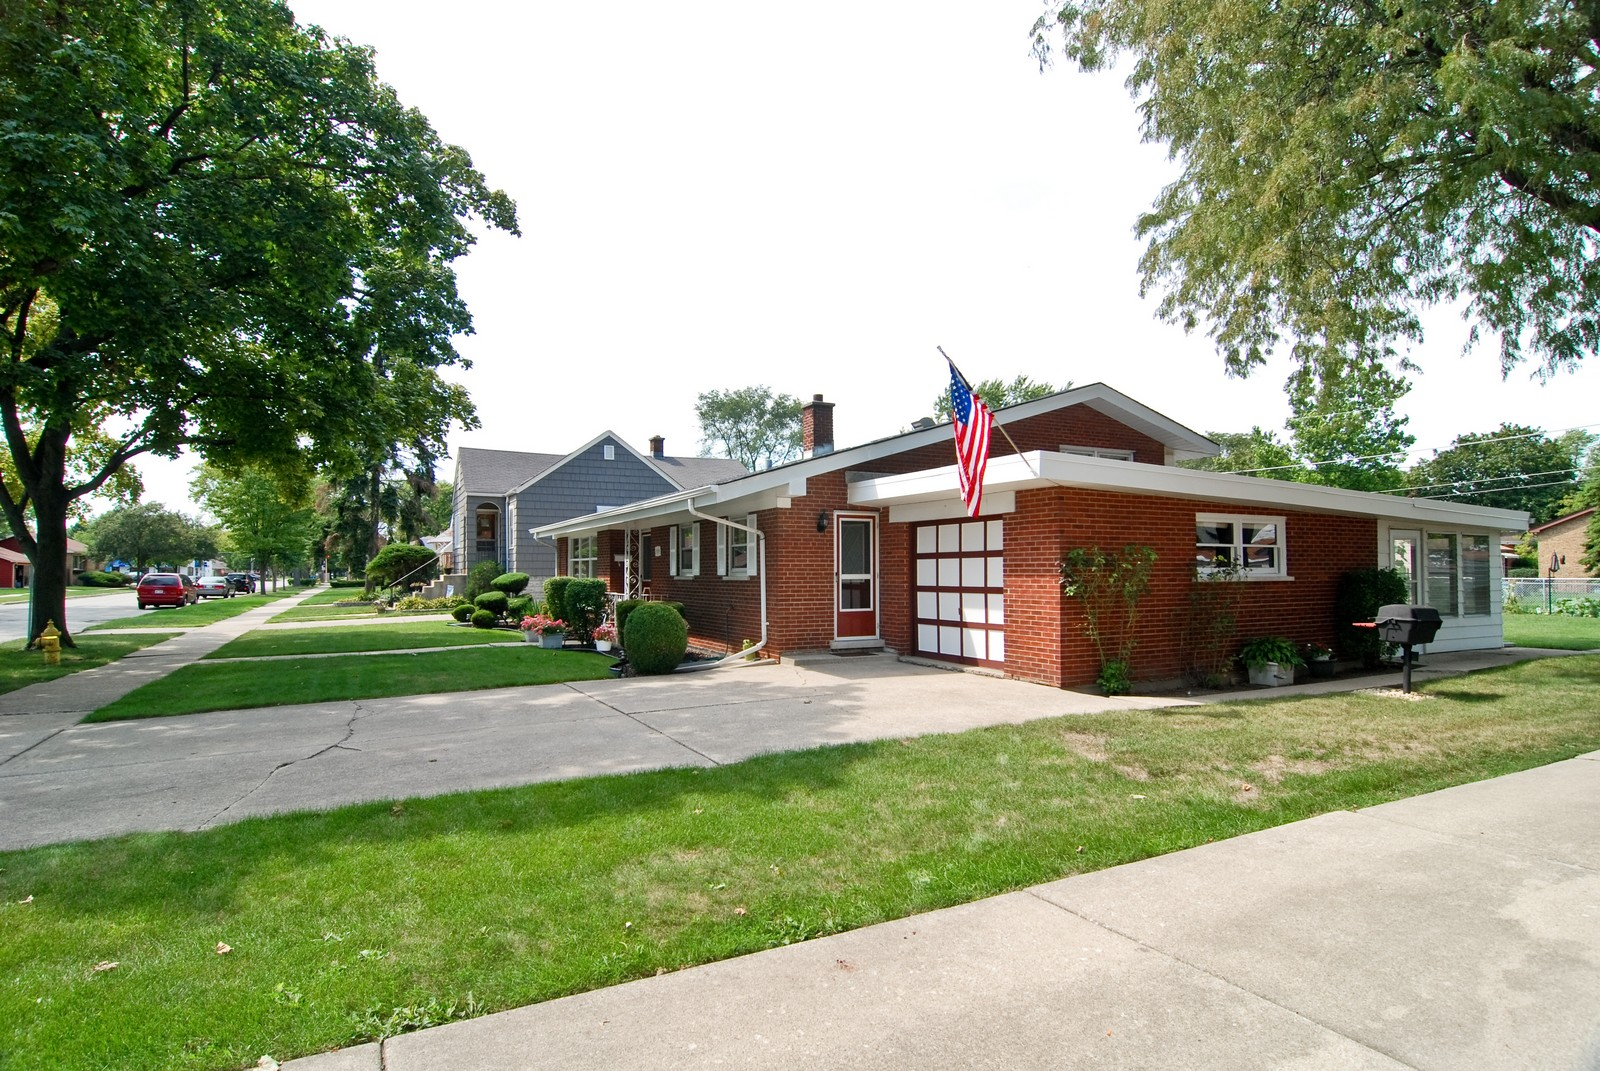 Real Estate Photography - 9118 30th Street, Brookfield, IL, 60513 - Location 1